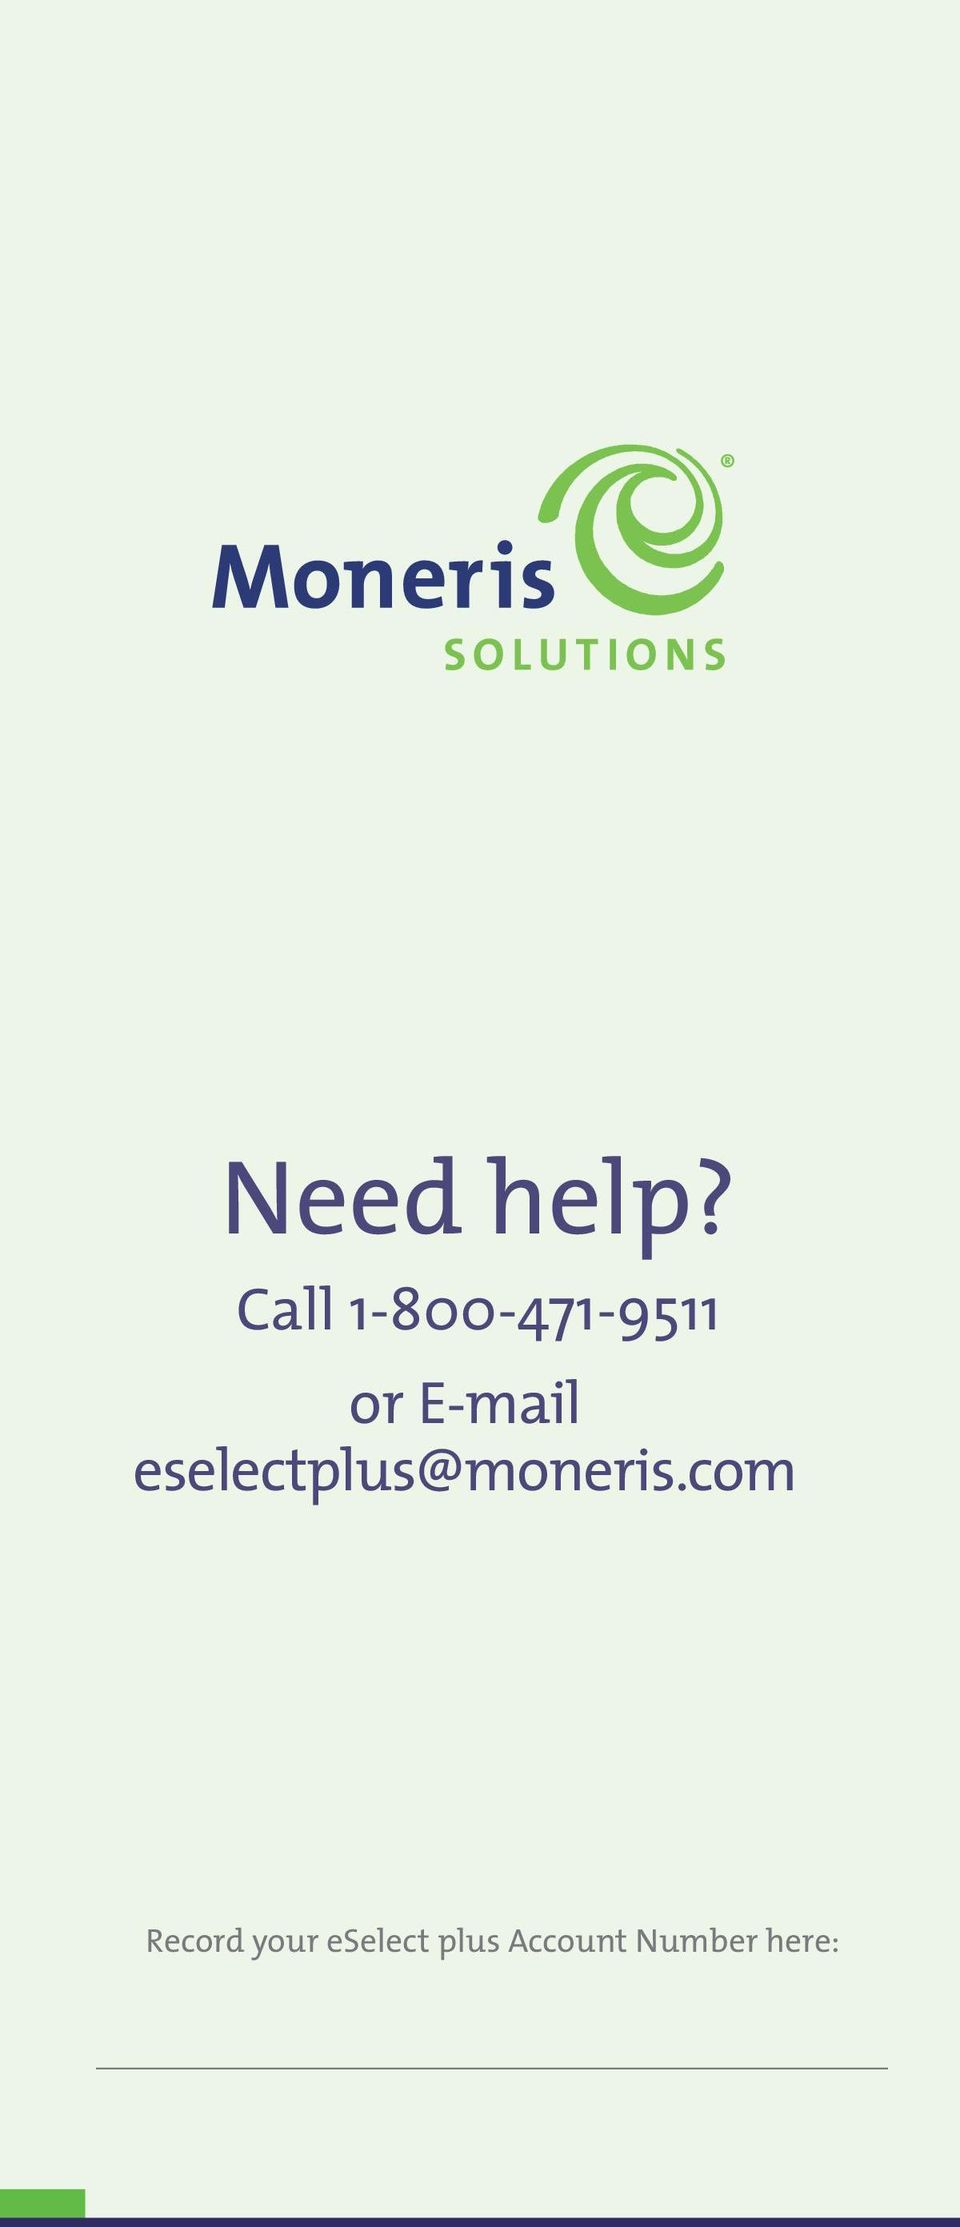 E-mail eselectplus@moneris.